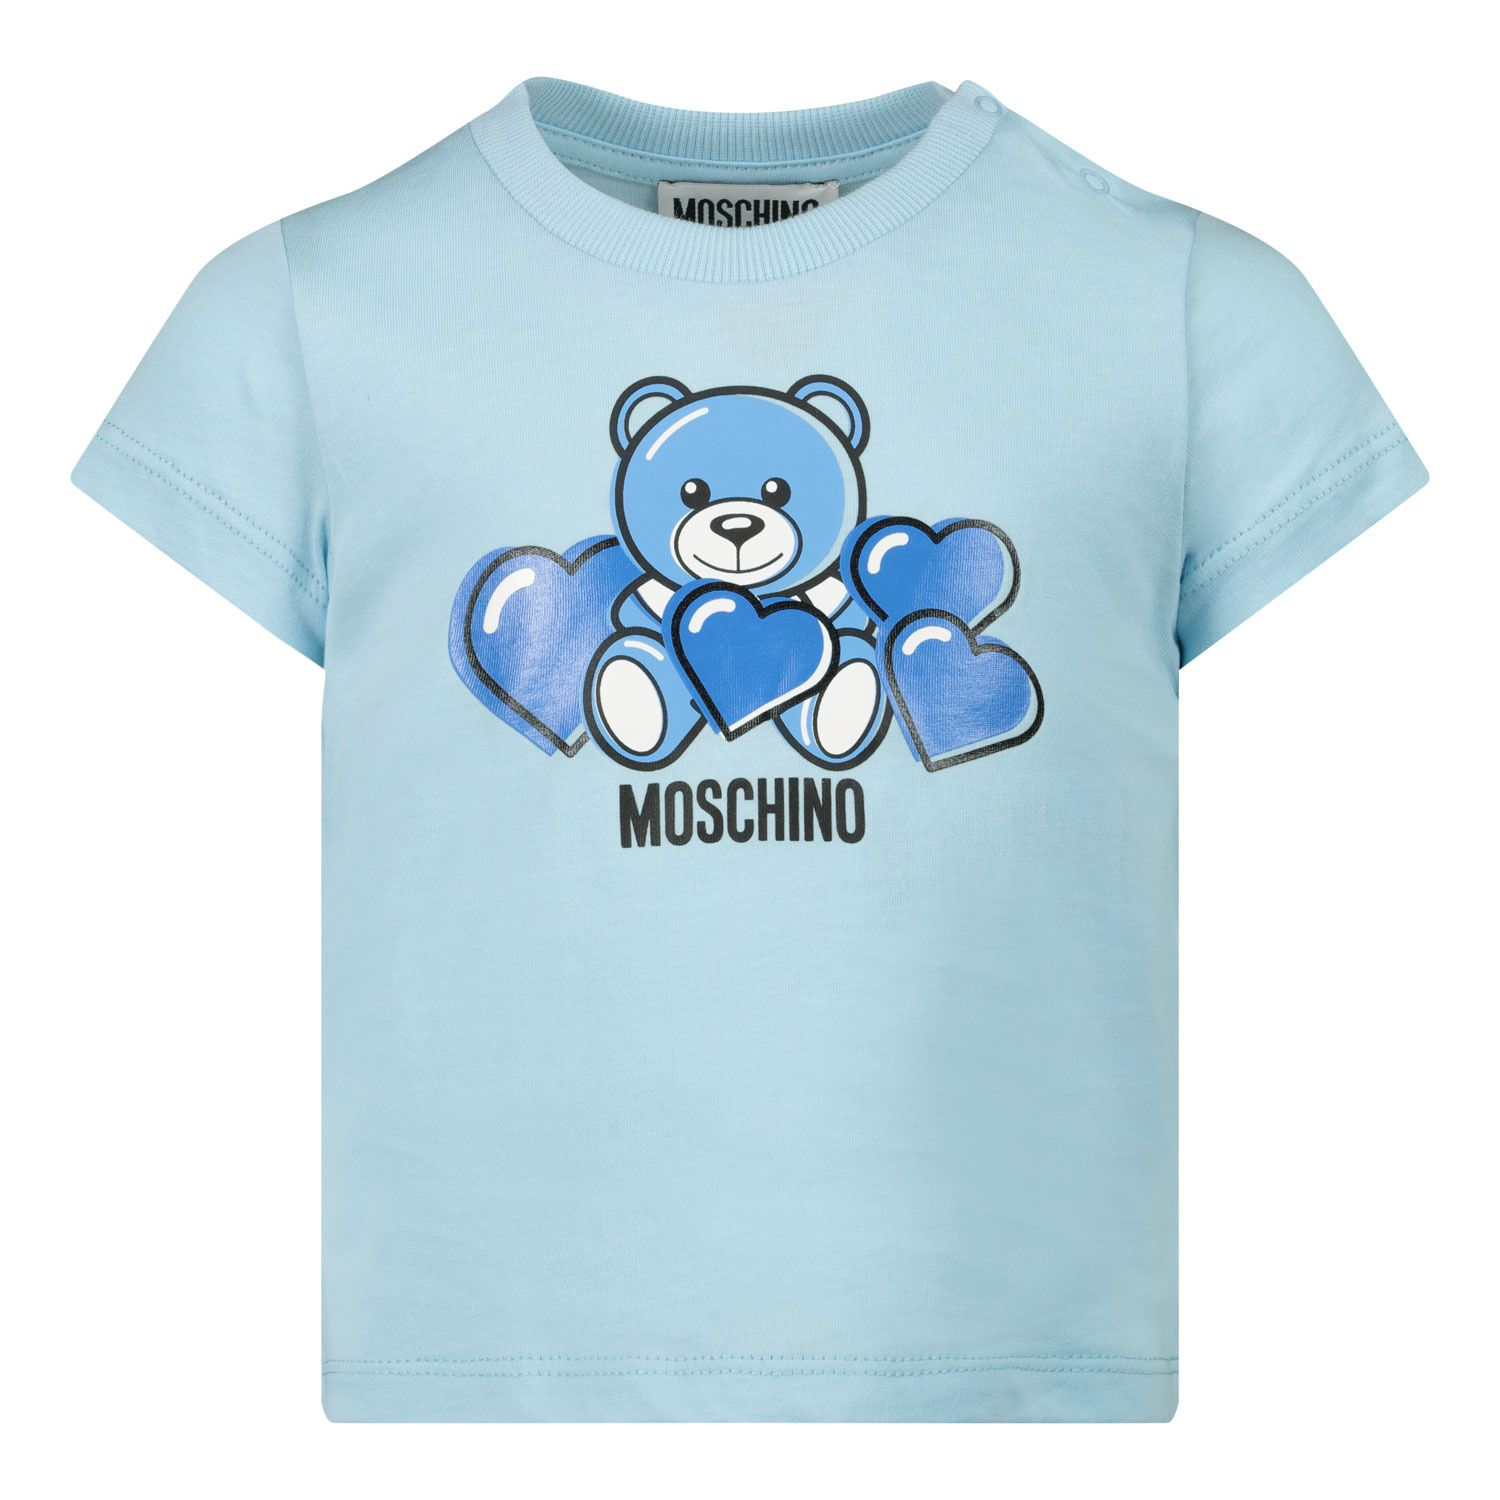 Picture of Moschino MXM02A baby shirt light blue